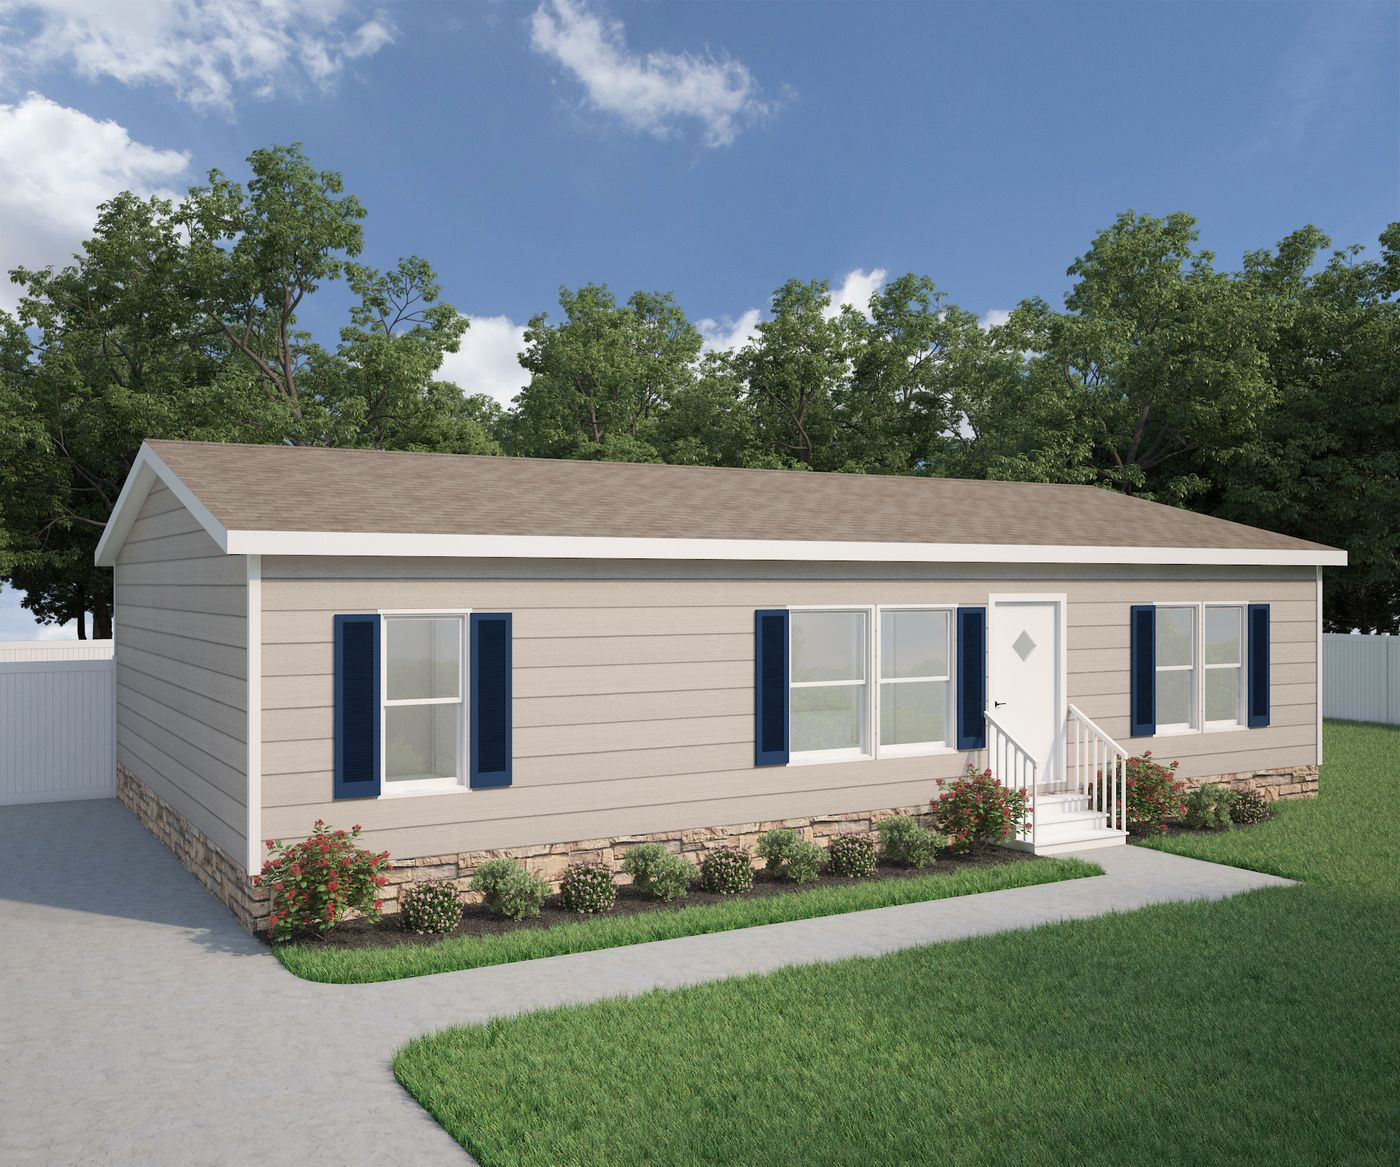 The Dawson, 3 Bedroom, 2 Bathroom Home Is Available For